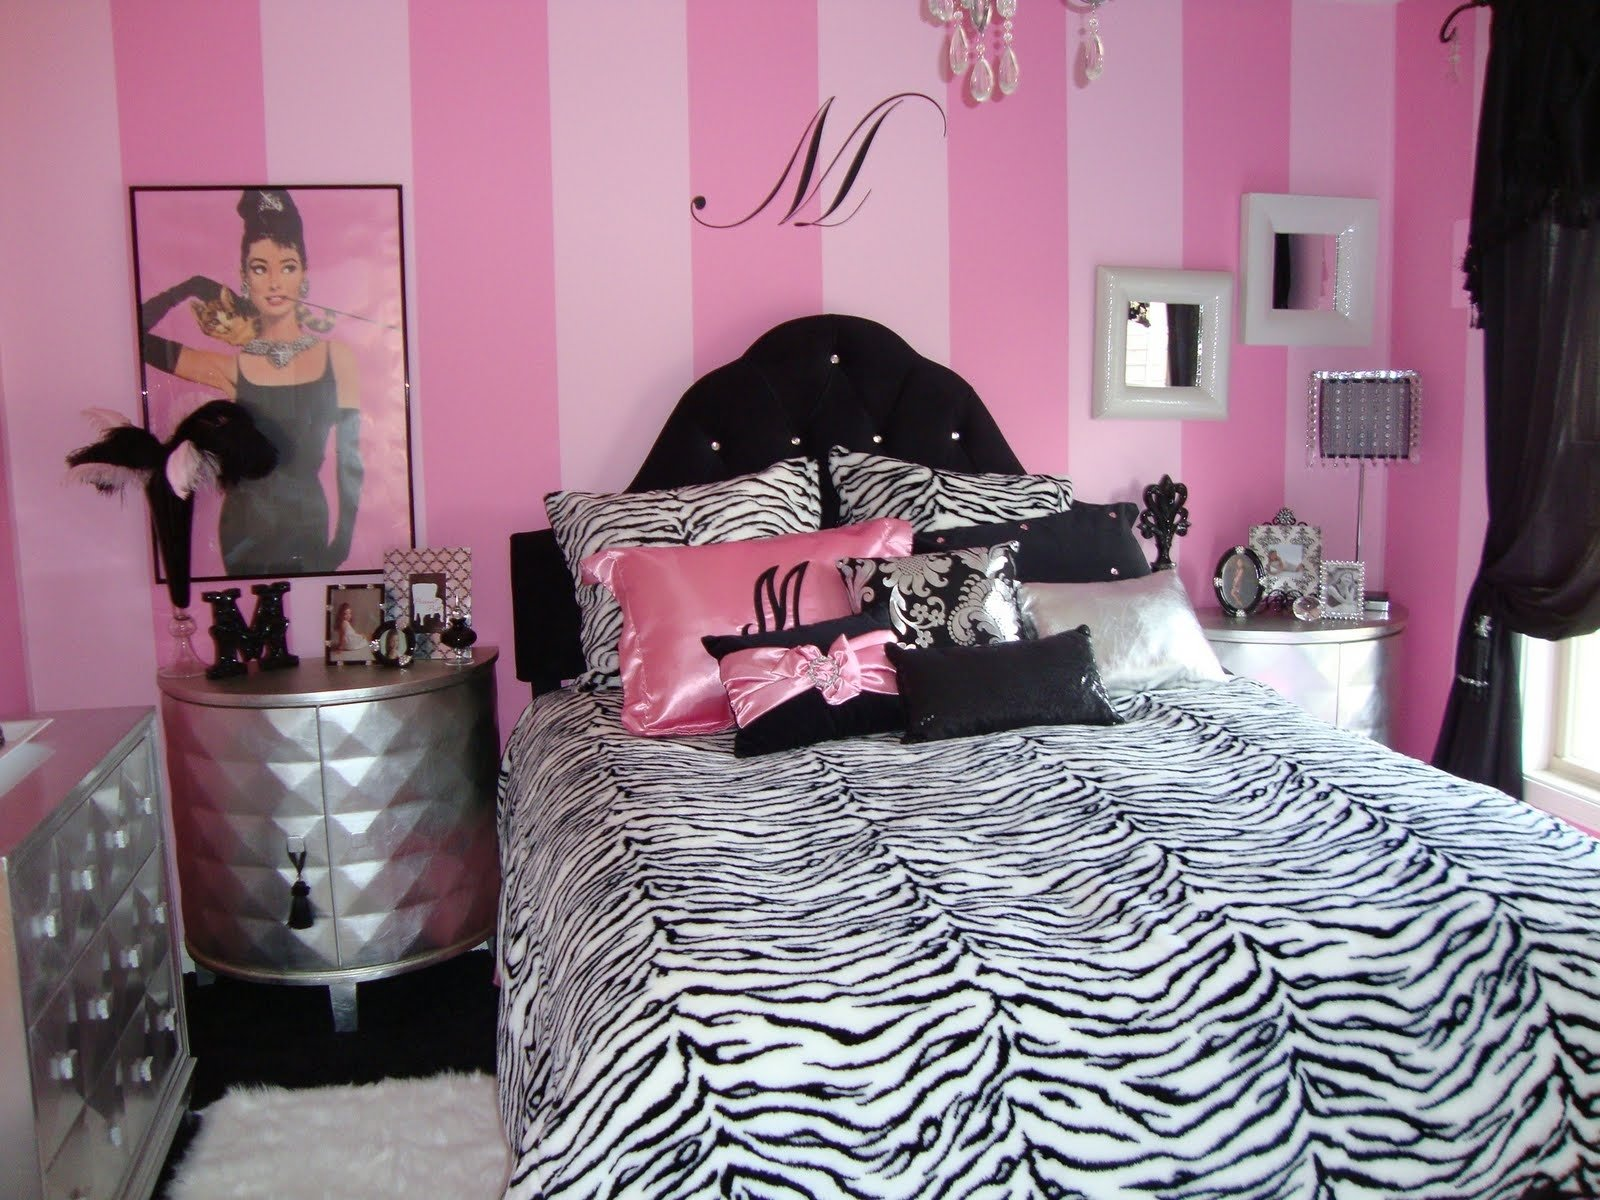 10 Most Recommended Pink Black And White Room Ideas teenage girl bedroom ideas pink and black deboto home design 2020